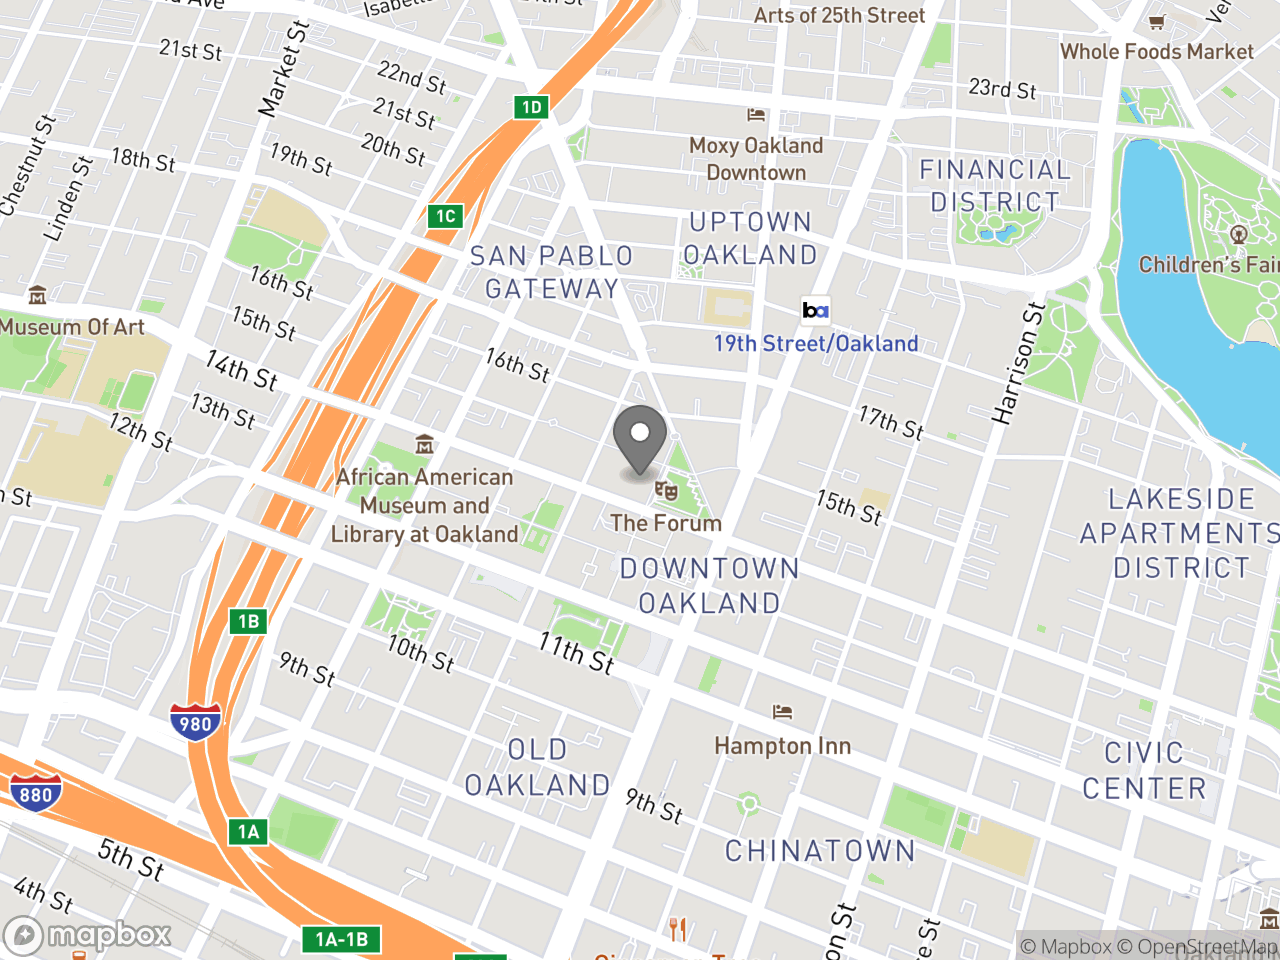 Map location for Bicyclist and Pedestrian Advisory Commission (BPAC) Meeting, September 20, 2018, located at 1 Frank H Ogawa Plaza in Oakland, CA 94612